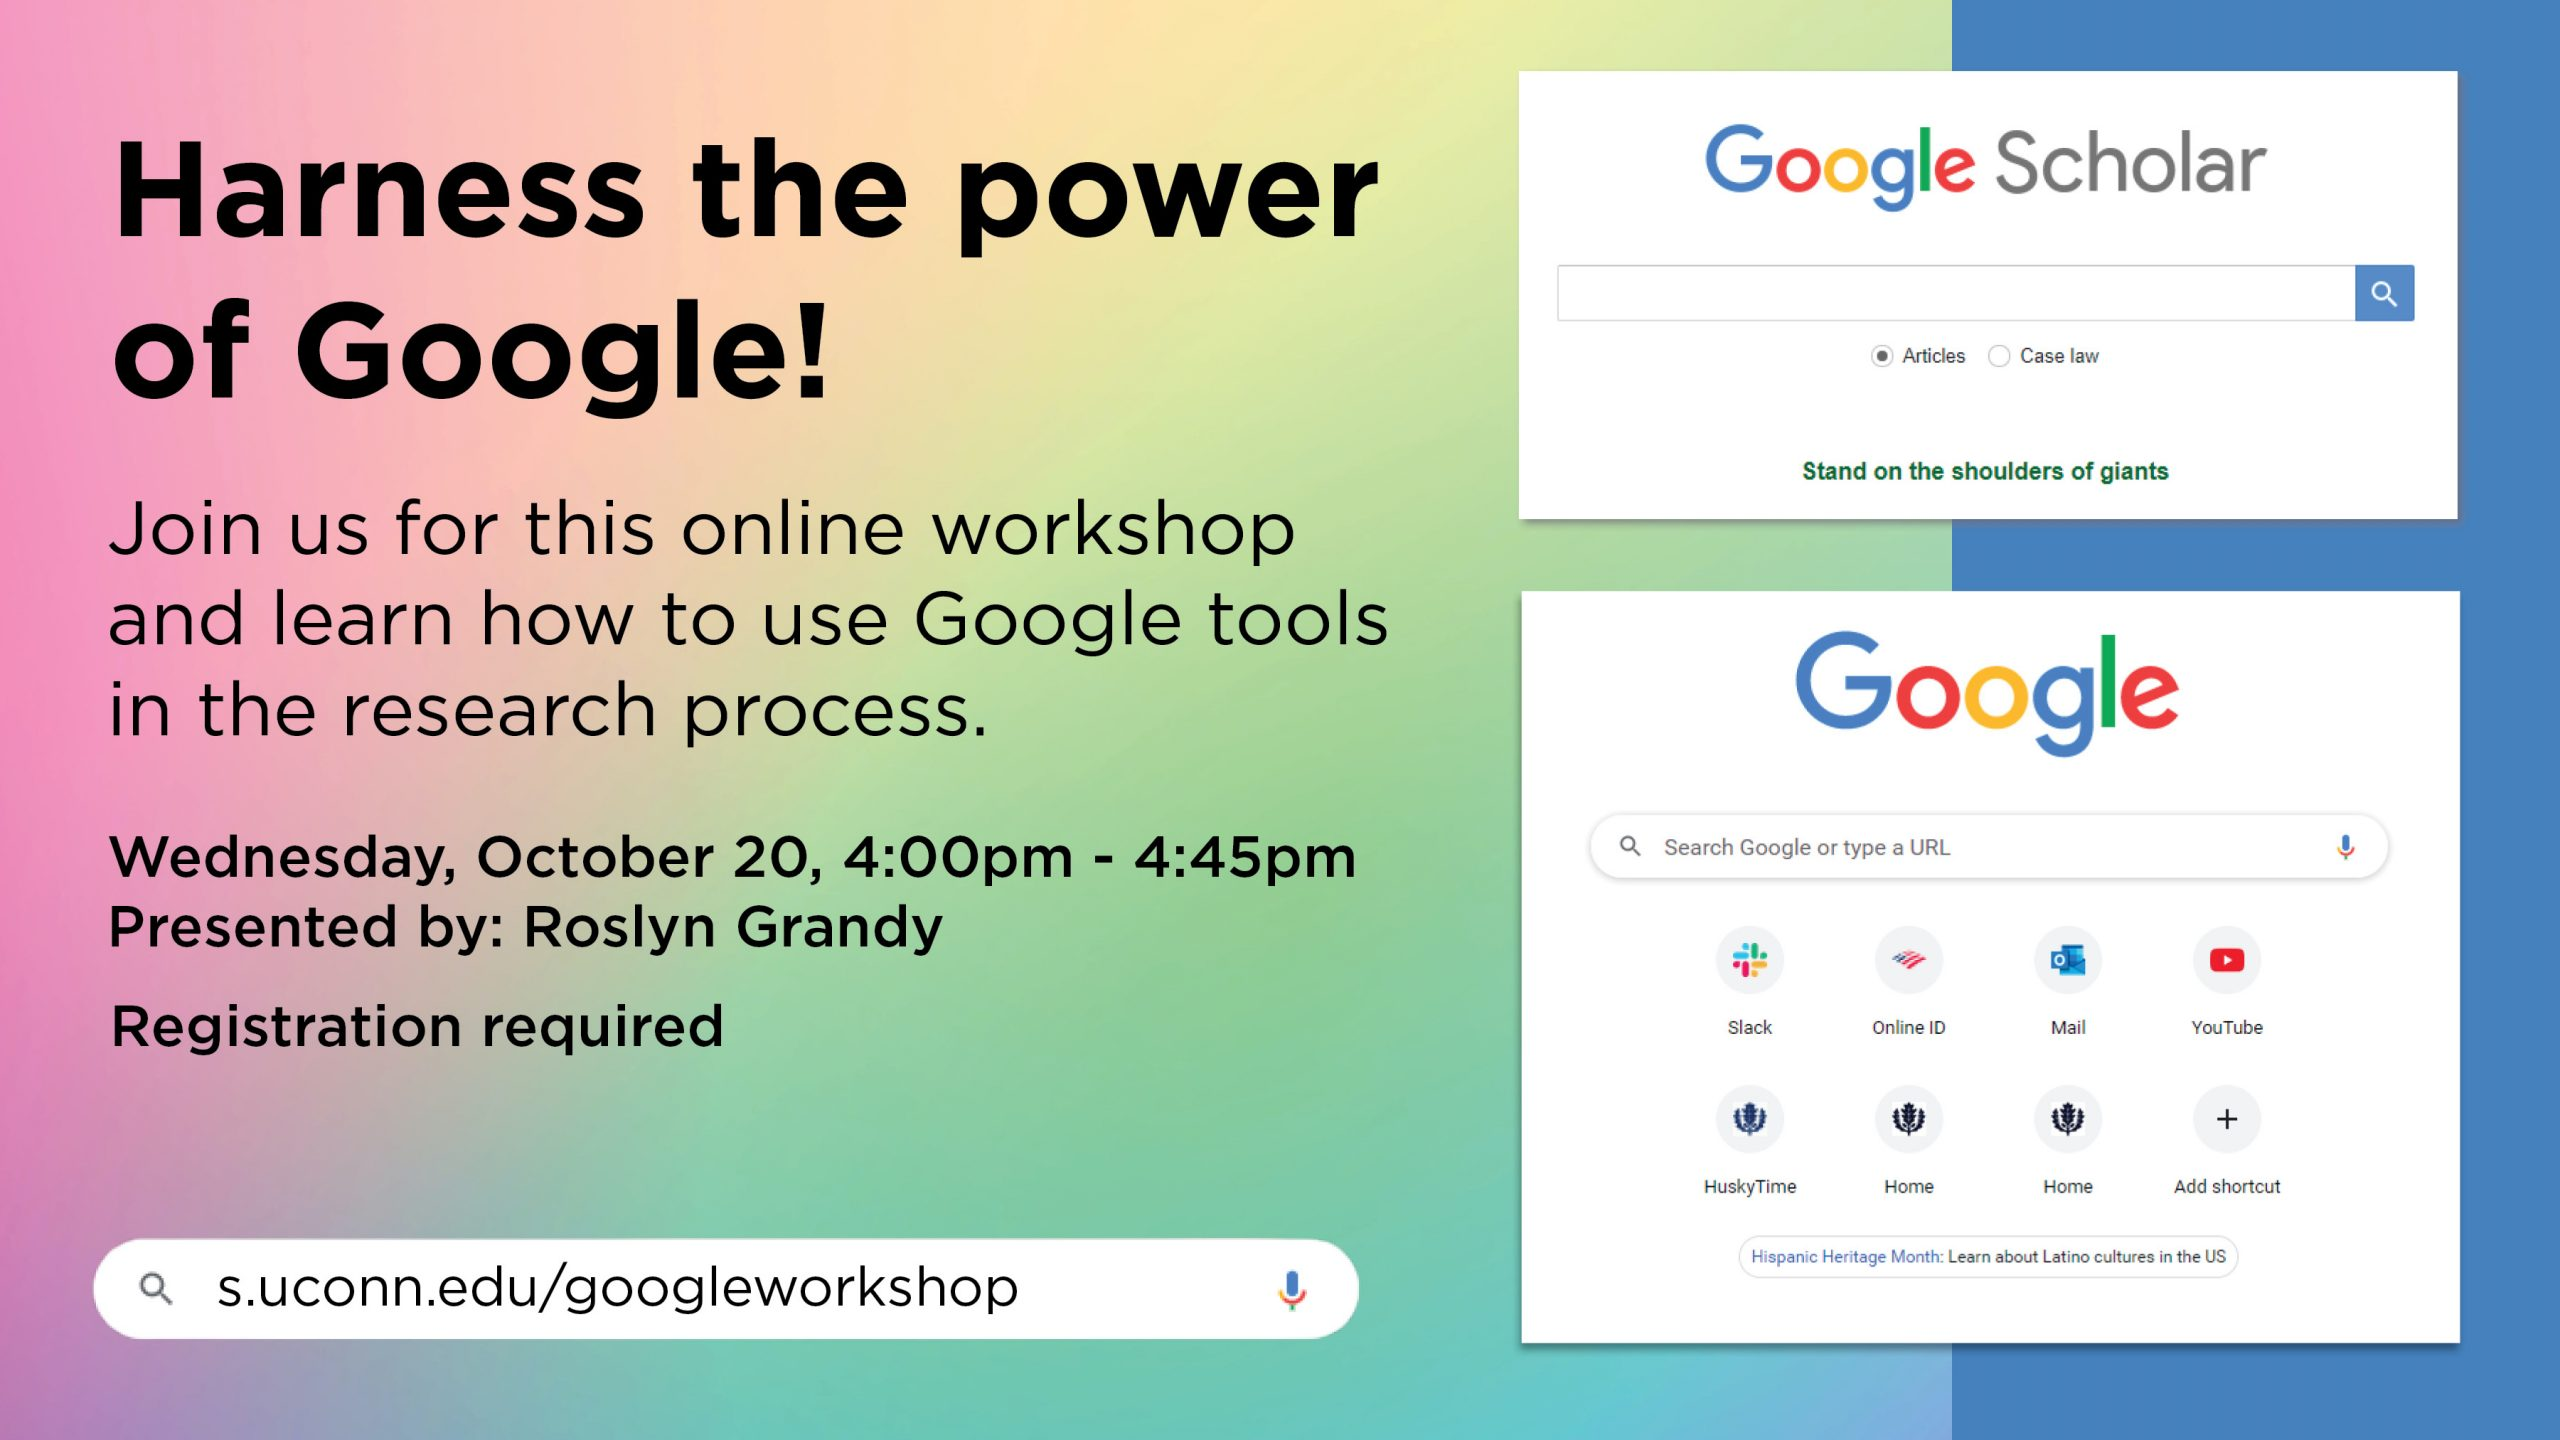 Harness the power of Google! Join us for this online workshop and learn how to use Google tools in the research process. Friday, October 20, 4:00pm - 4:45pm Presented by: Roslyn Grandy. Registration required. s.uconn.edu/GoogleWorkshop